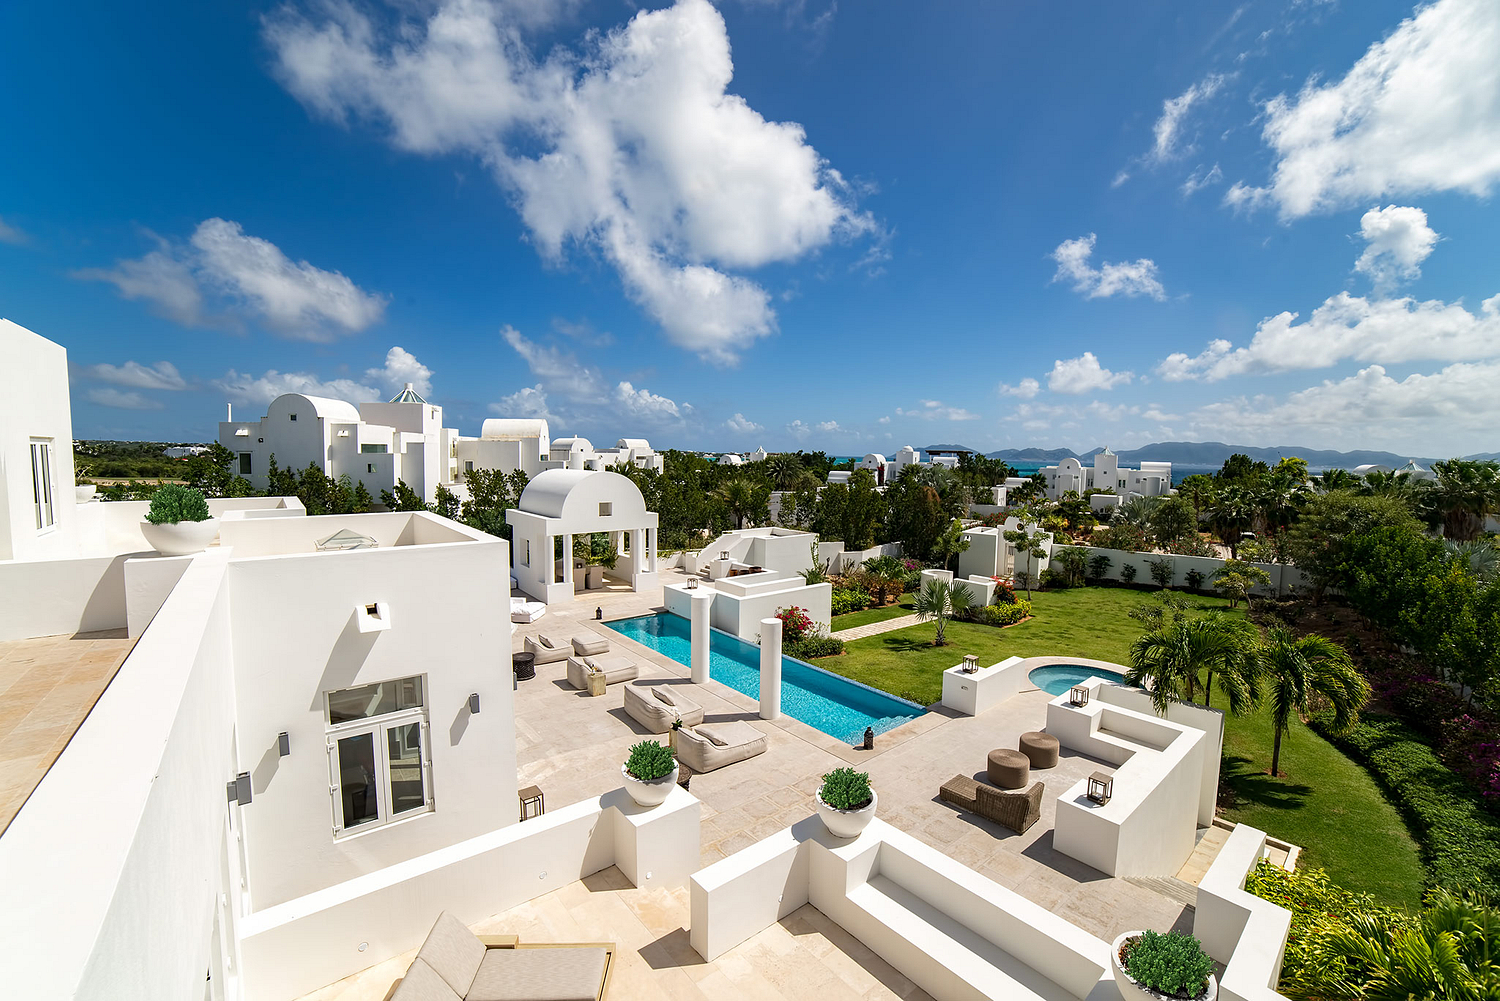 Luxury Villa Patio2, The Residences by CuisinArt, Anguilla